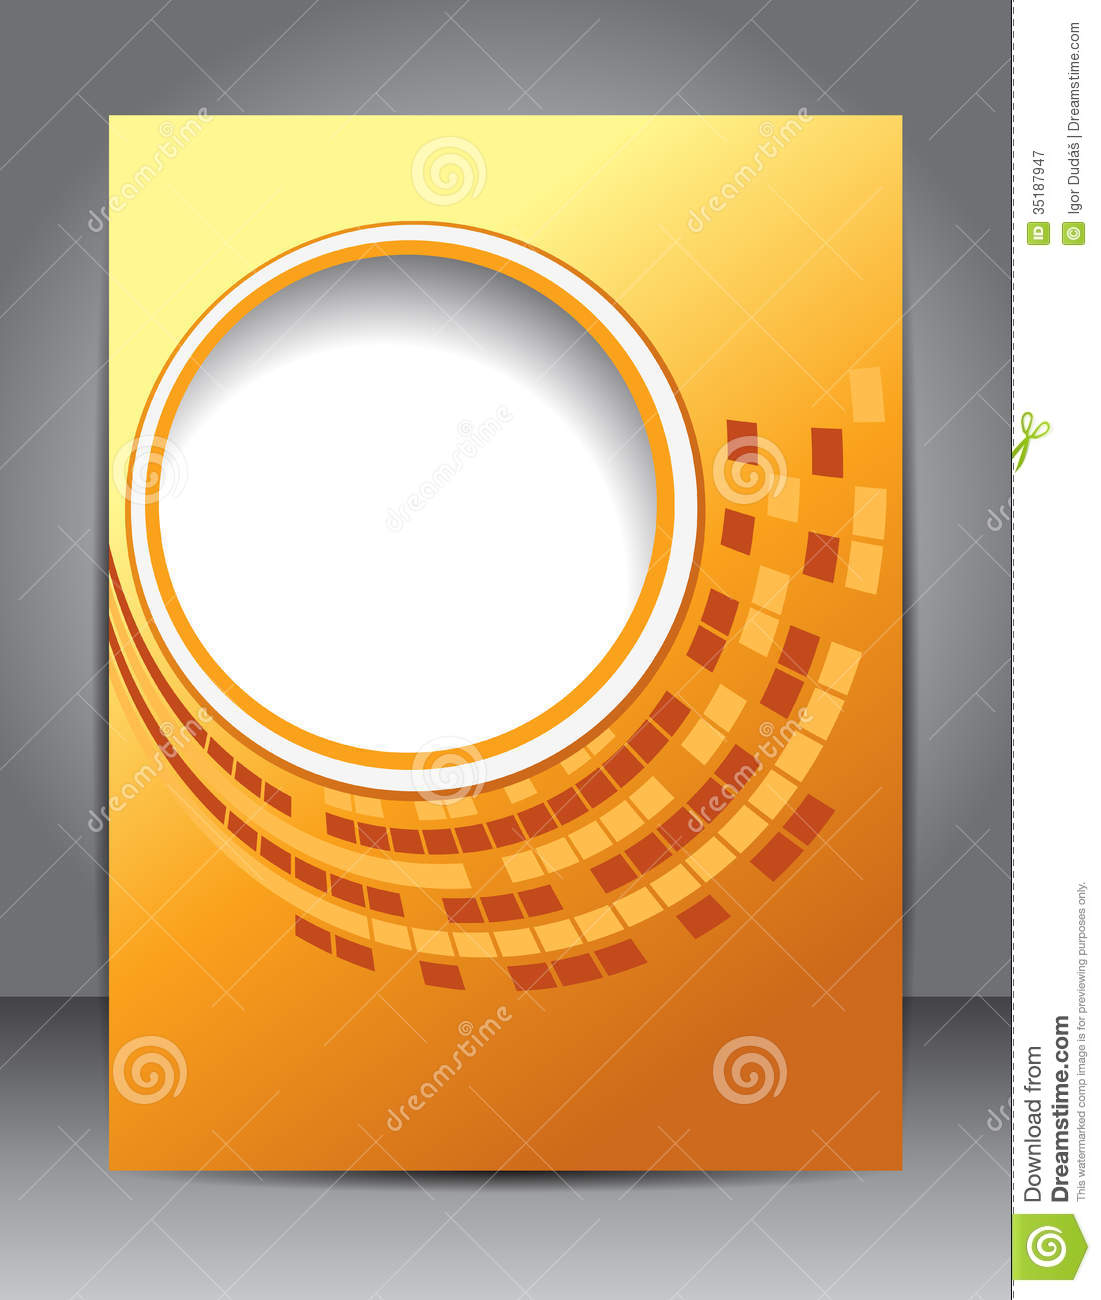 Brochure Design Royalty Free Stock Photography - Image: 35187947